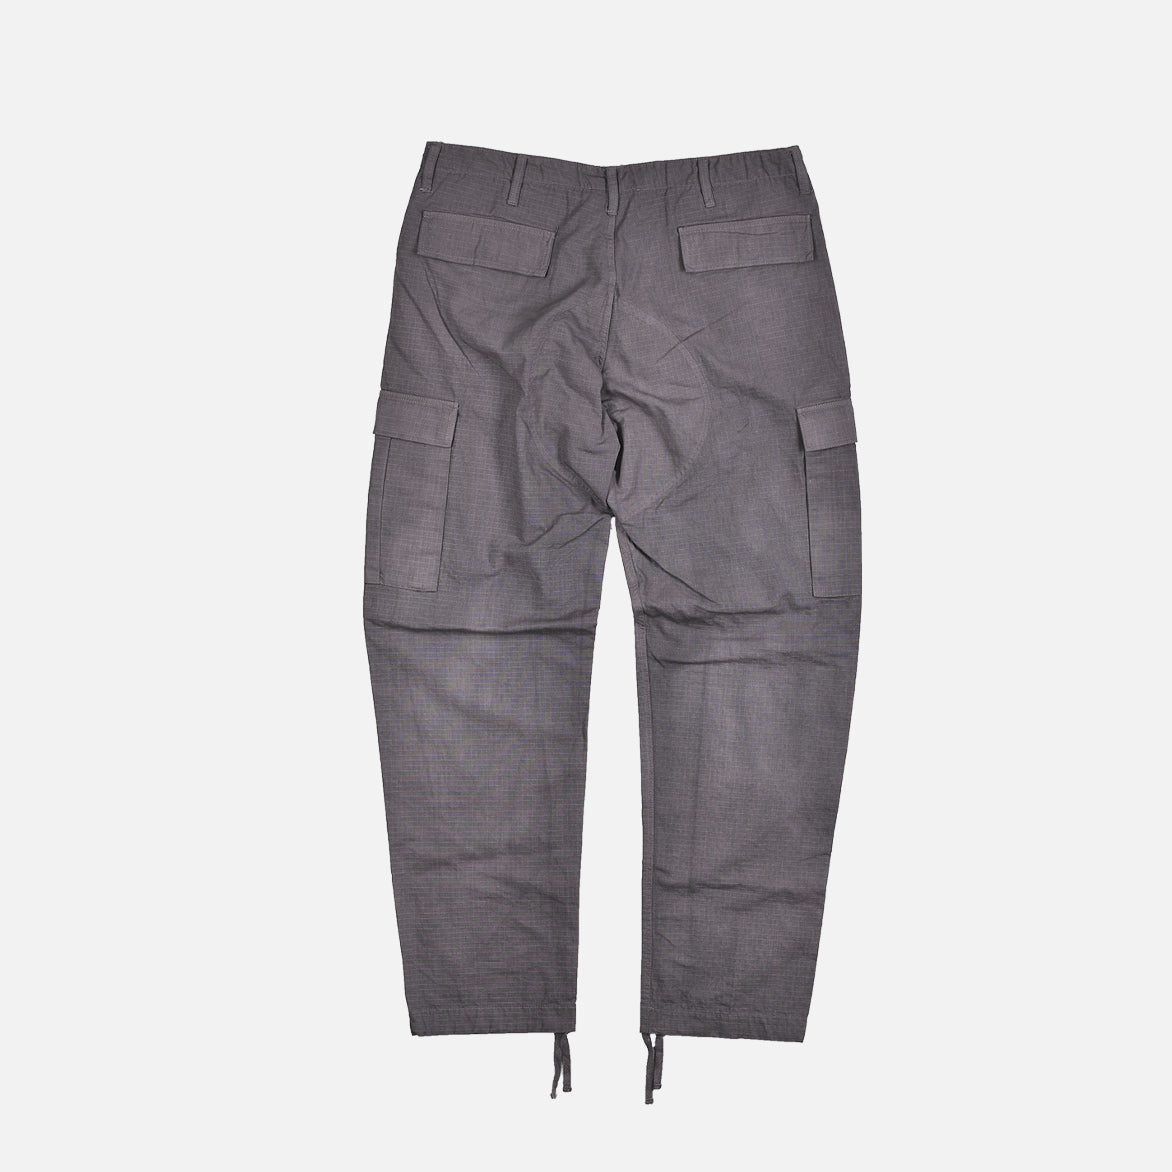 RIPSTOP CARGO PANT - SLATE